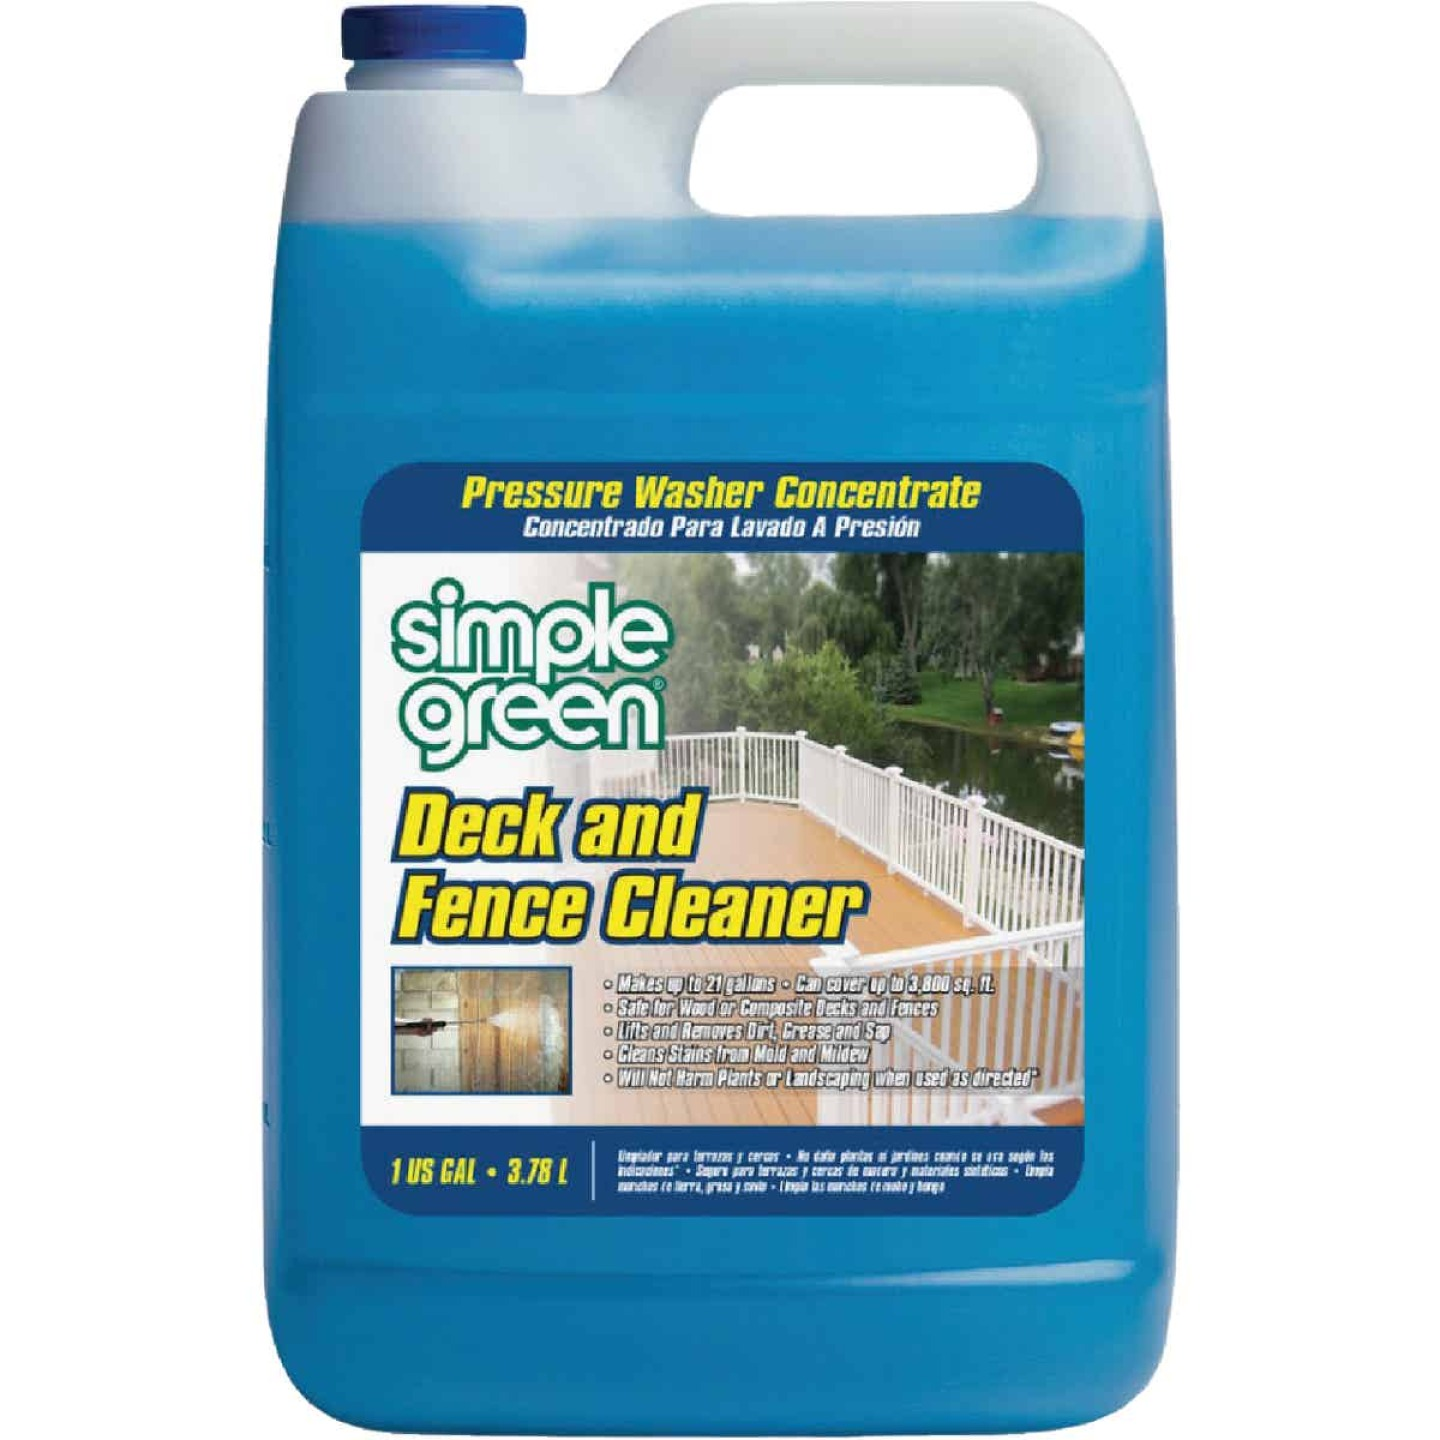 Simple Green 1 Gal. Deck & Fence Pressure Washer Concentrate Cleaner Image 1